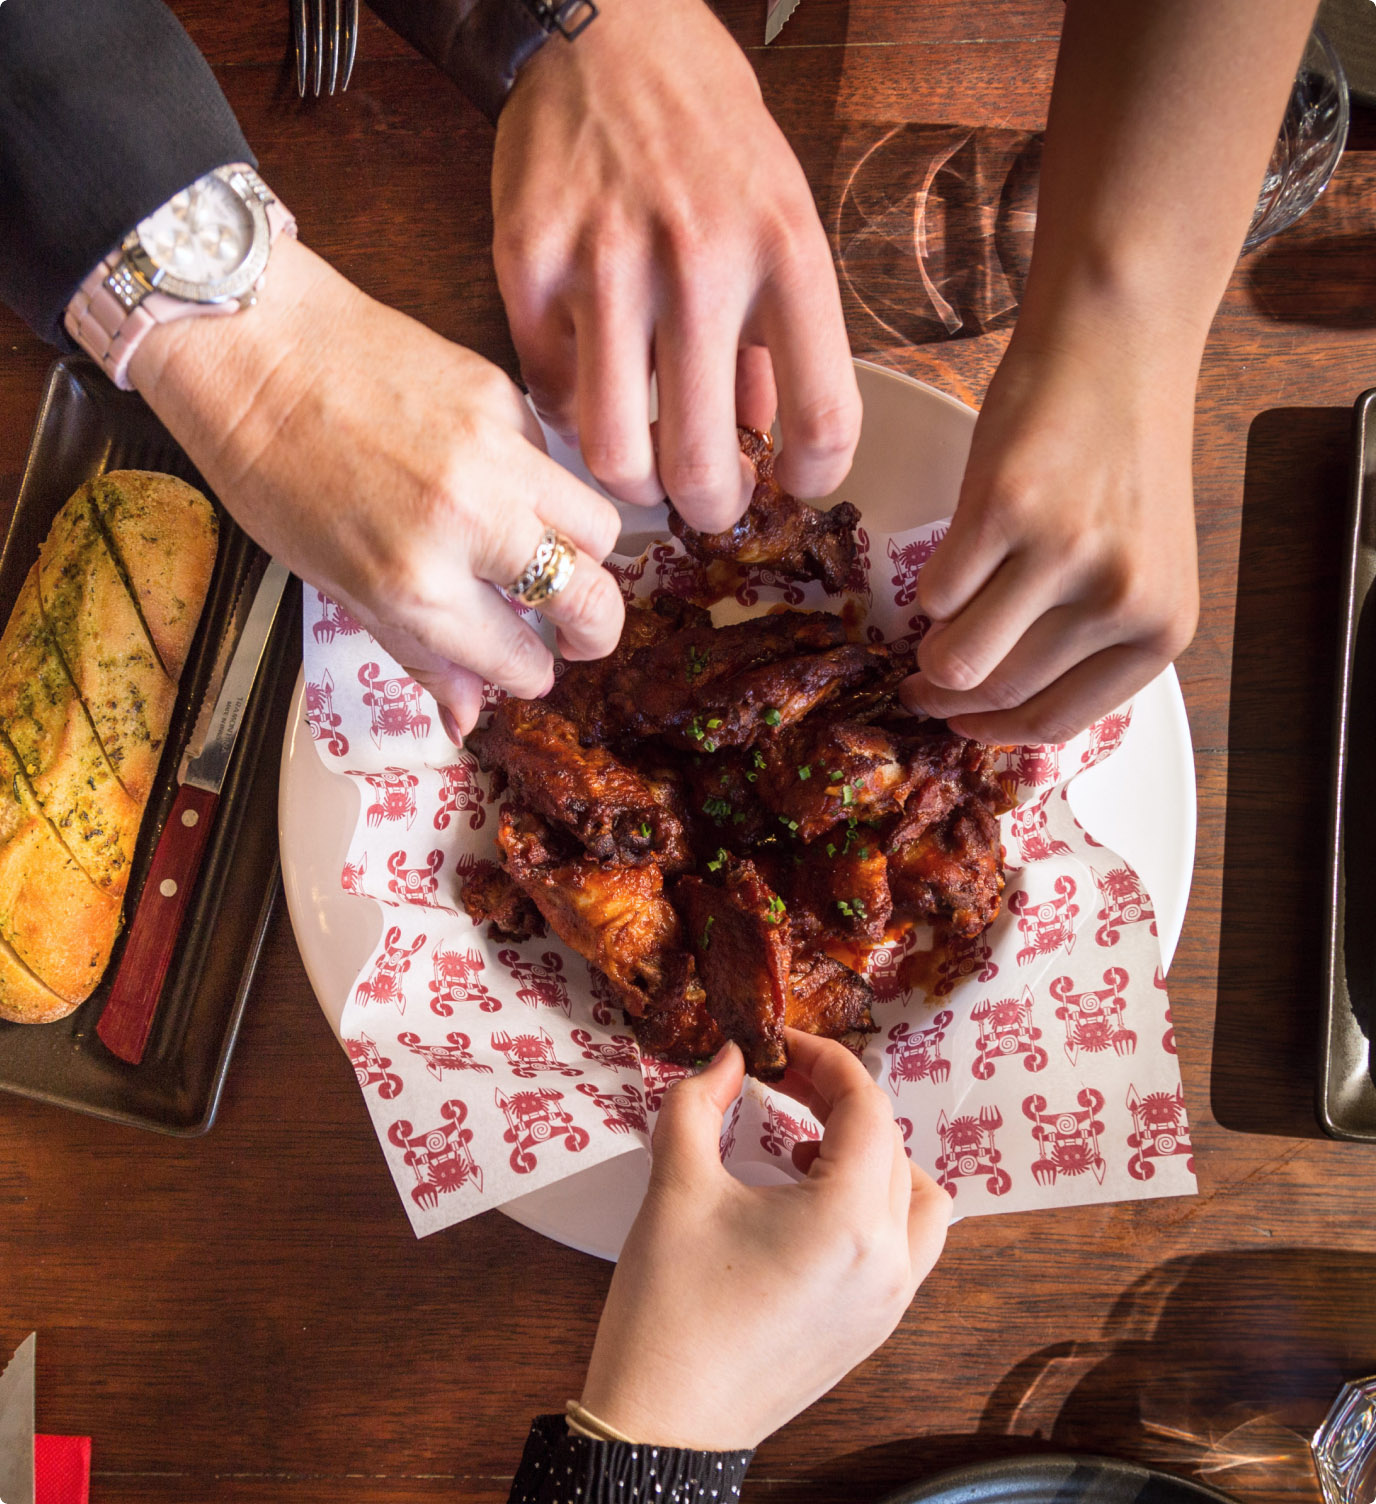 Wings for sharing, everyone gets a bit of that amazing flavour. The good stuff.